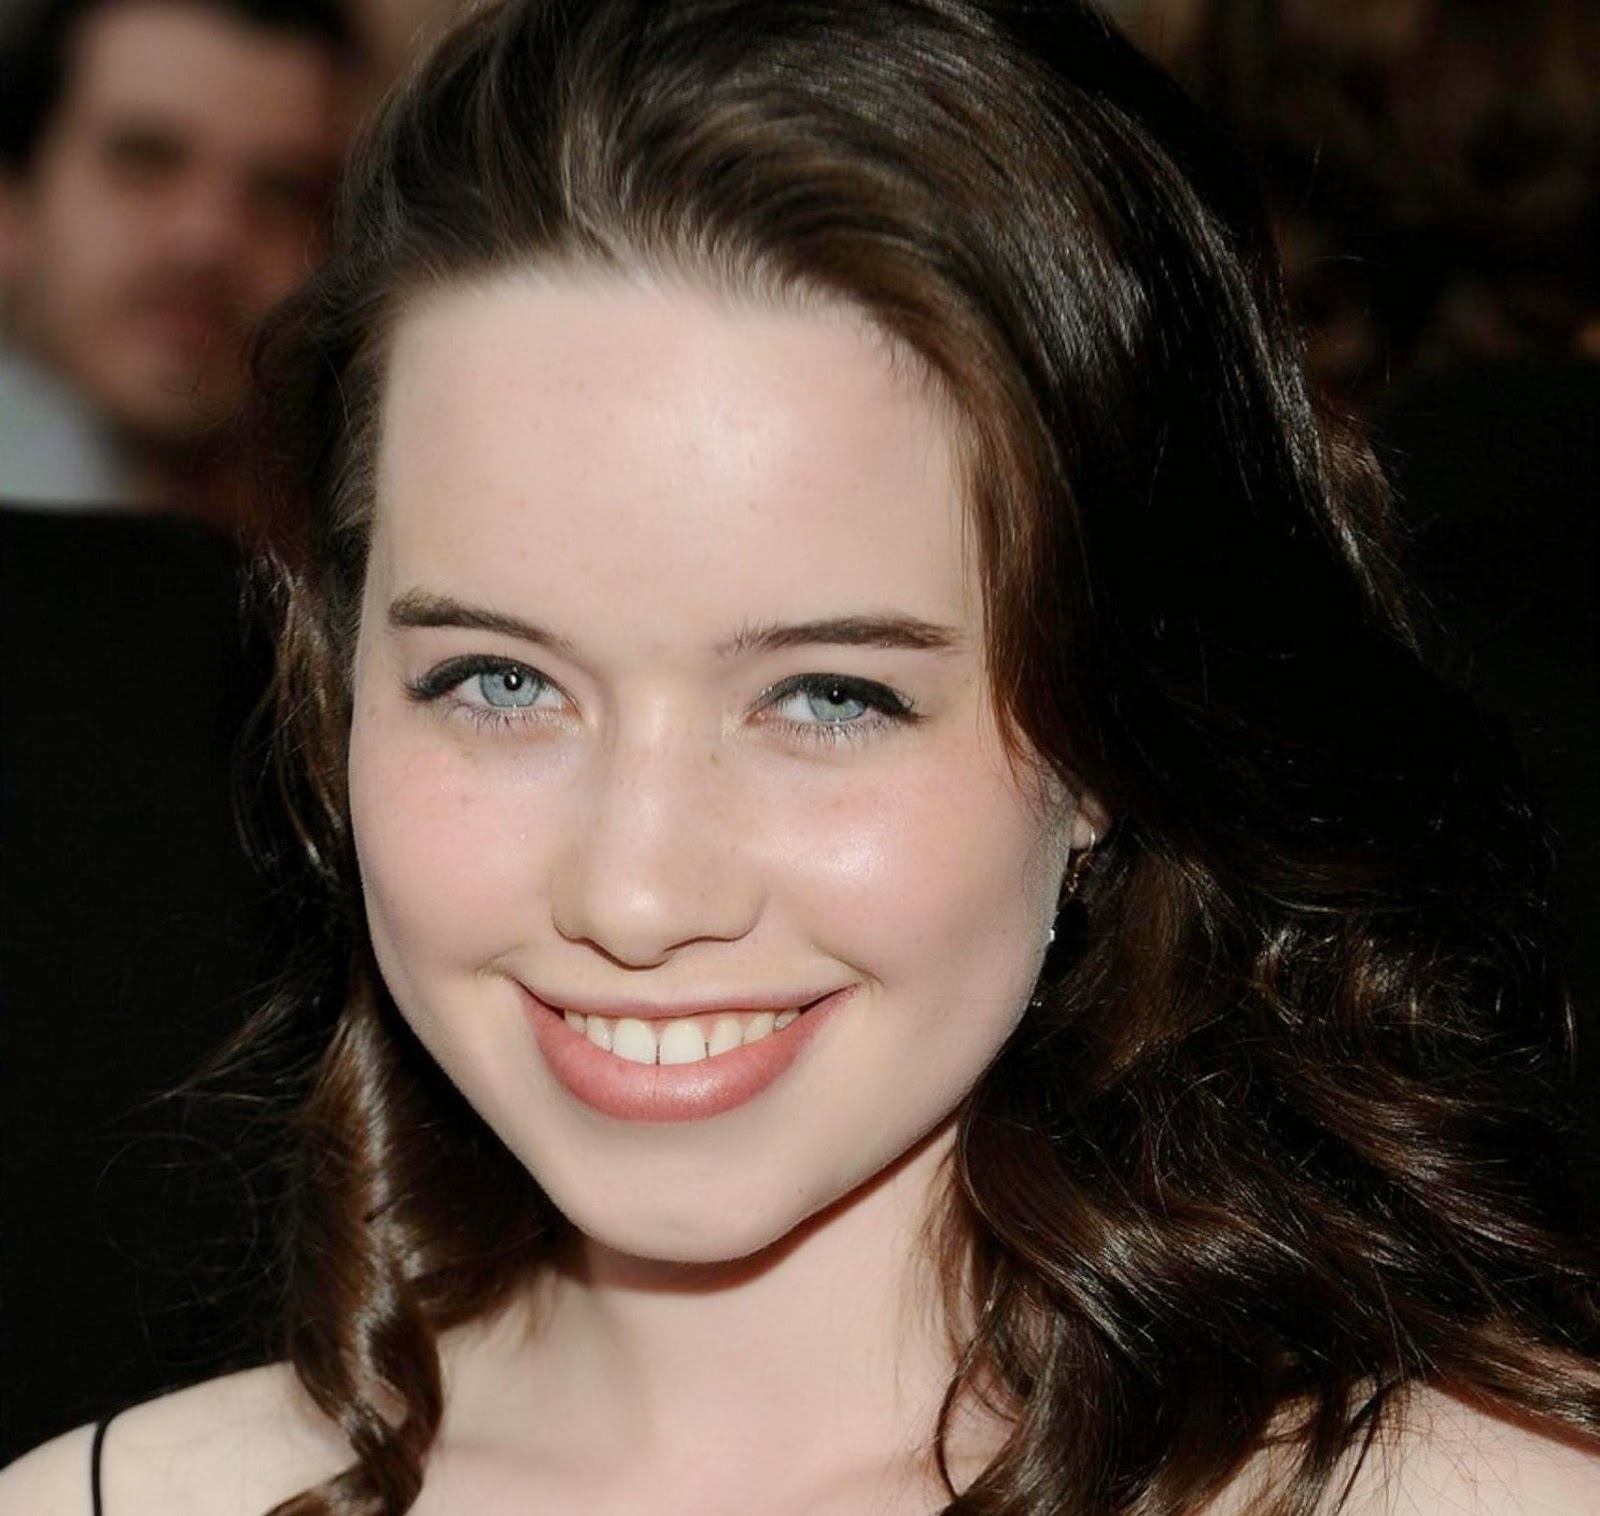 Nove Ber Fall Wallpaper For Computer Anna Popplewell Wallpapers Free Download Theroyalspeaker